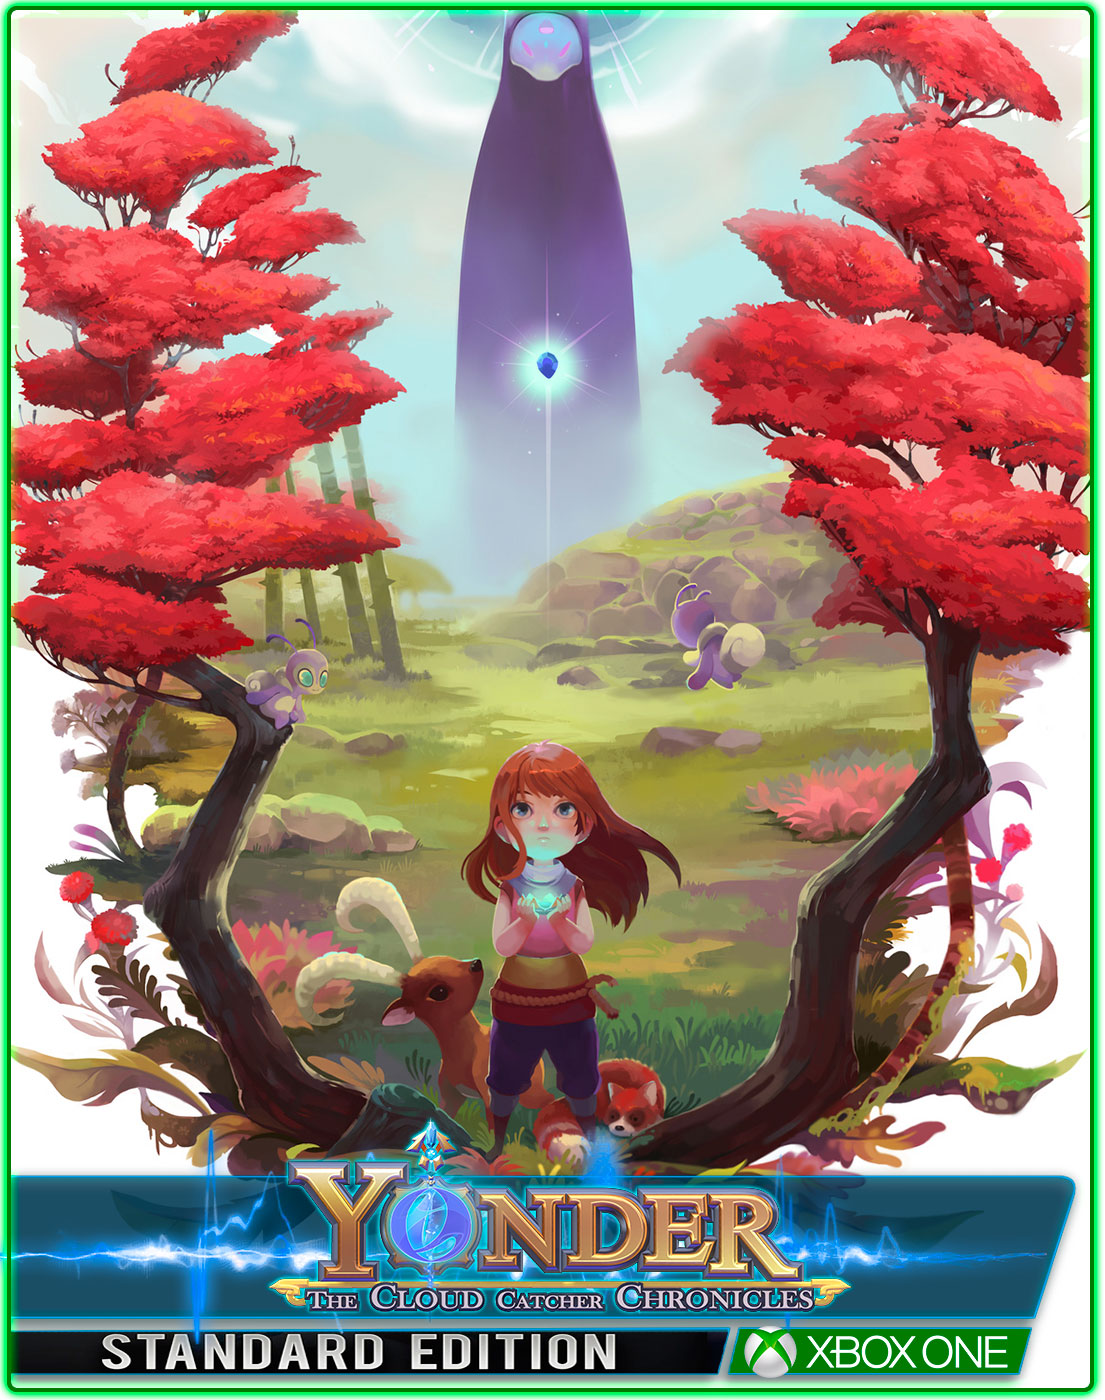 Yonder The Cloud Catcher Chronicles(XBOX ONE)